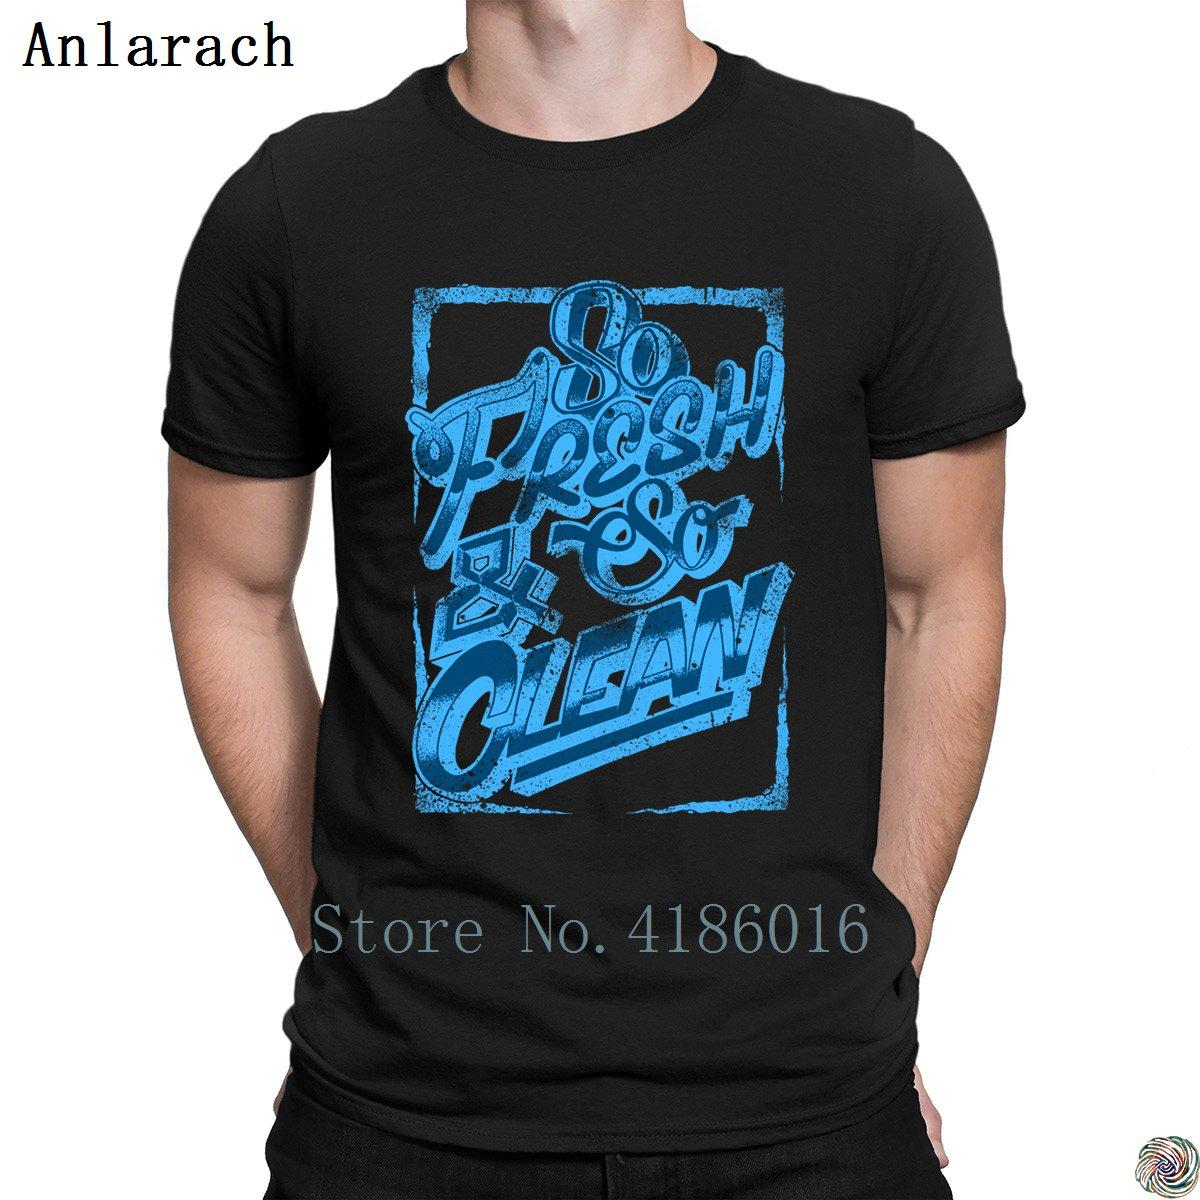 635a2c84 So Fresh And So Clean T Shirts Summer Pop Top Tee Popular Cotton T Shirt  For Men Personality Solid Color Standard Family Funny It Shirts Ridiculous  Shirts ...